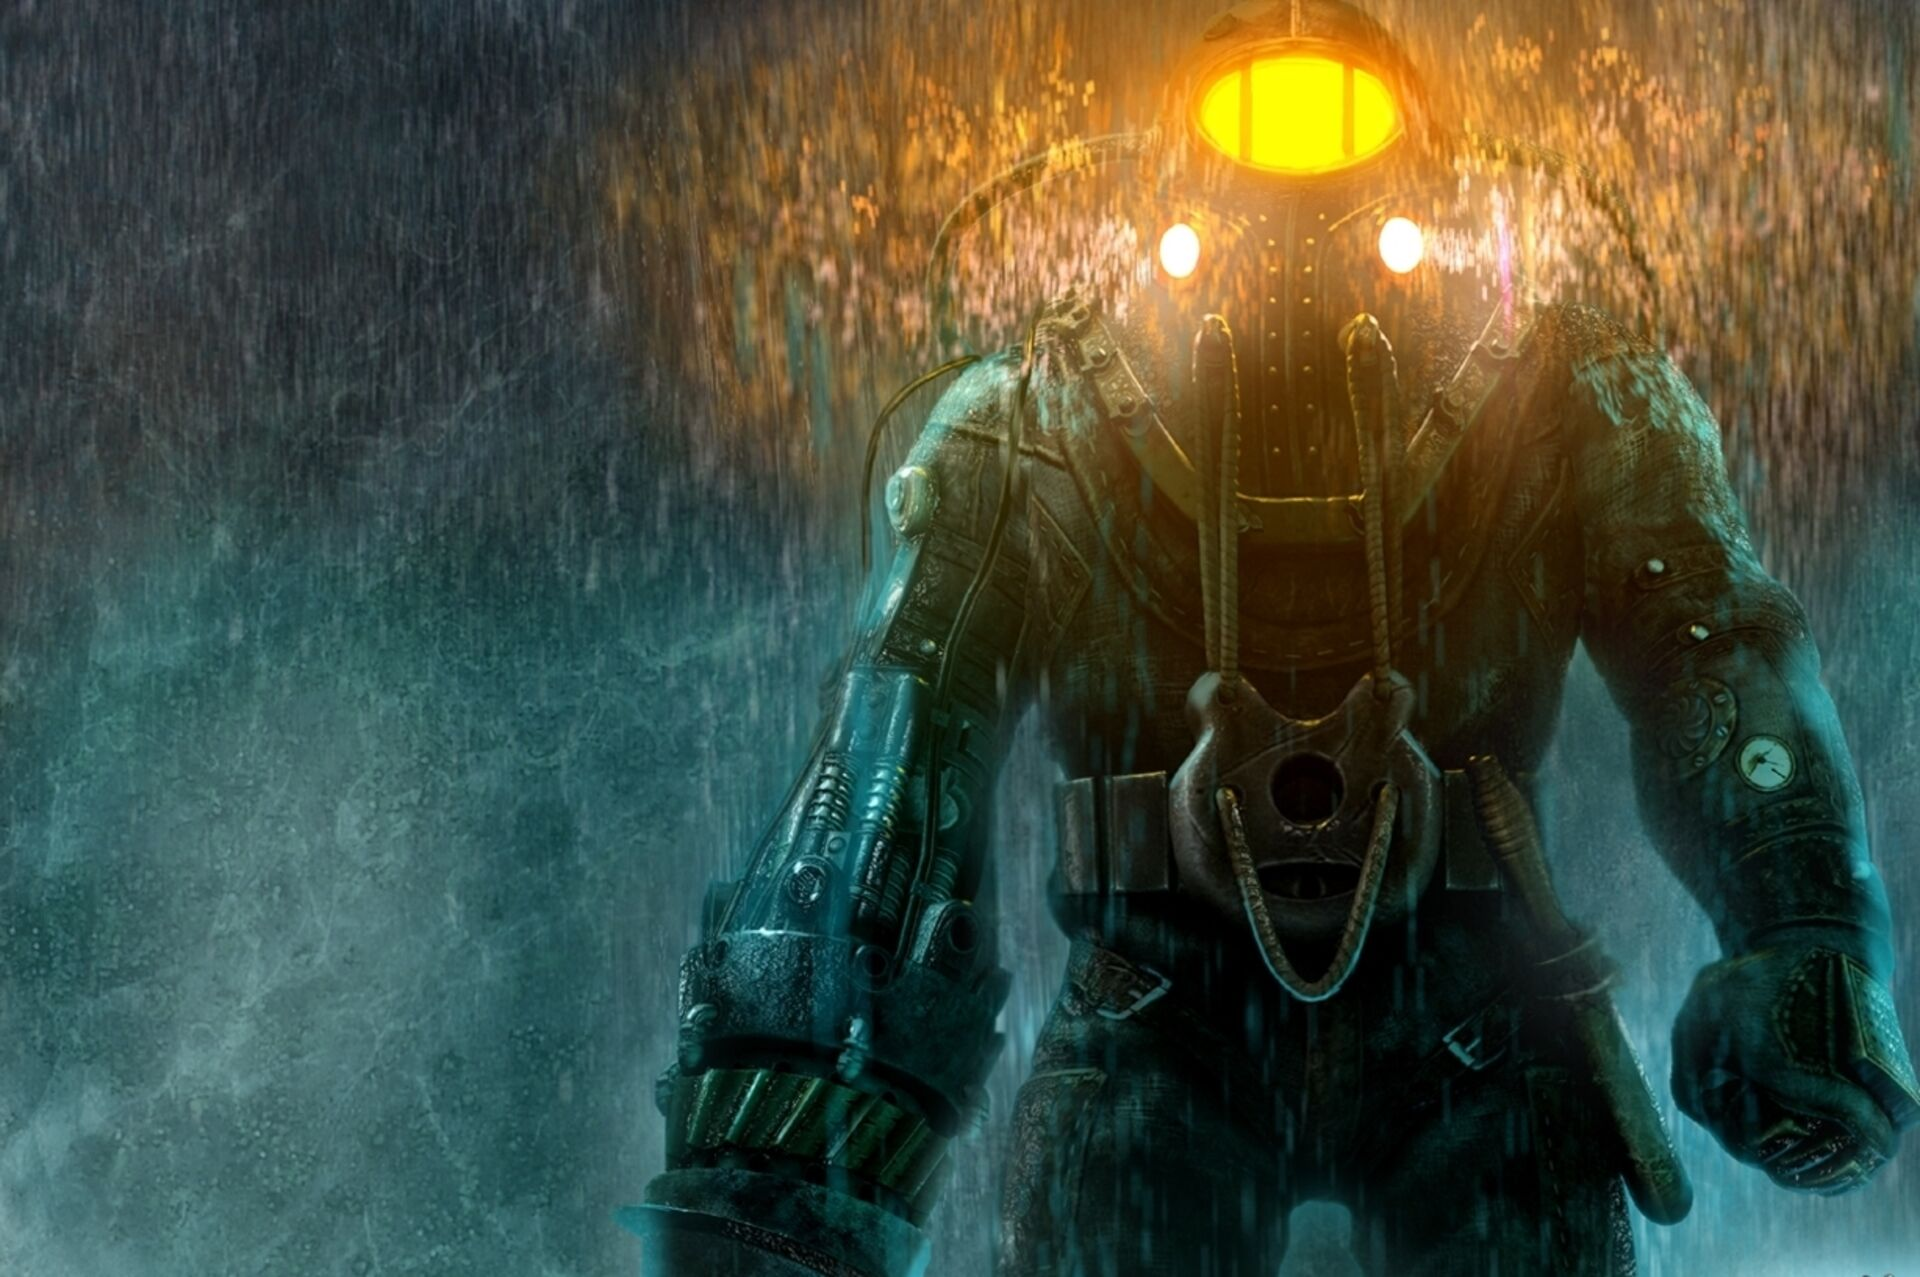 BioShock 2 is the underrated human heart of the BioShock